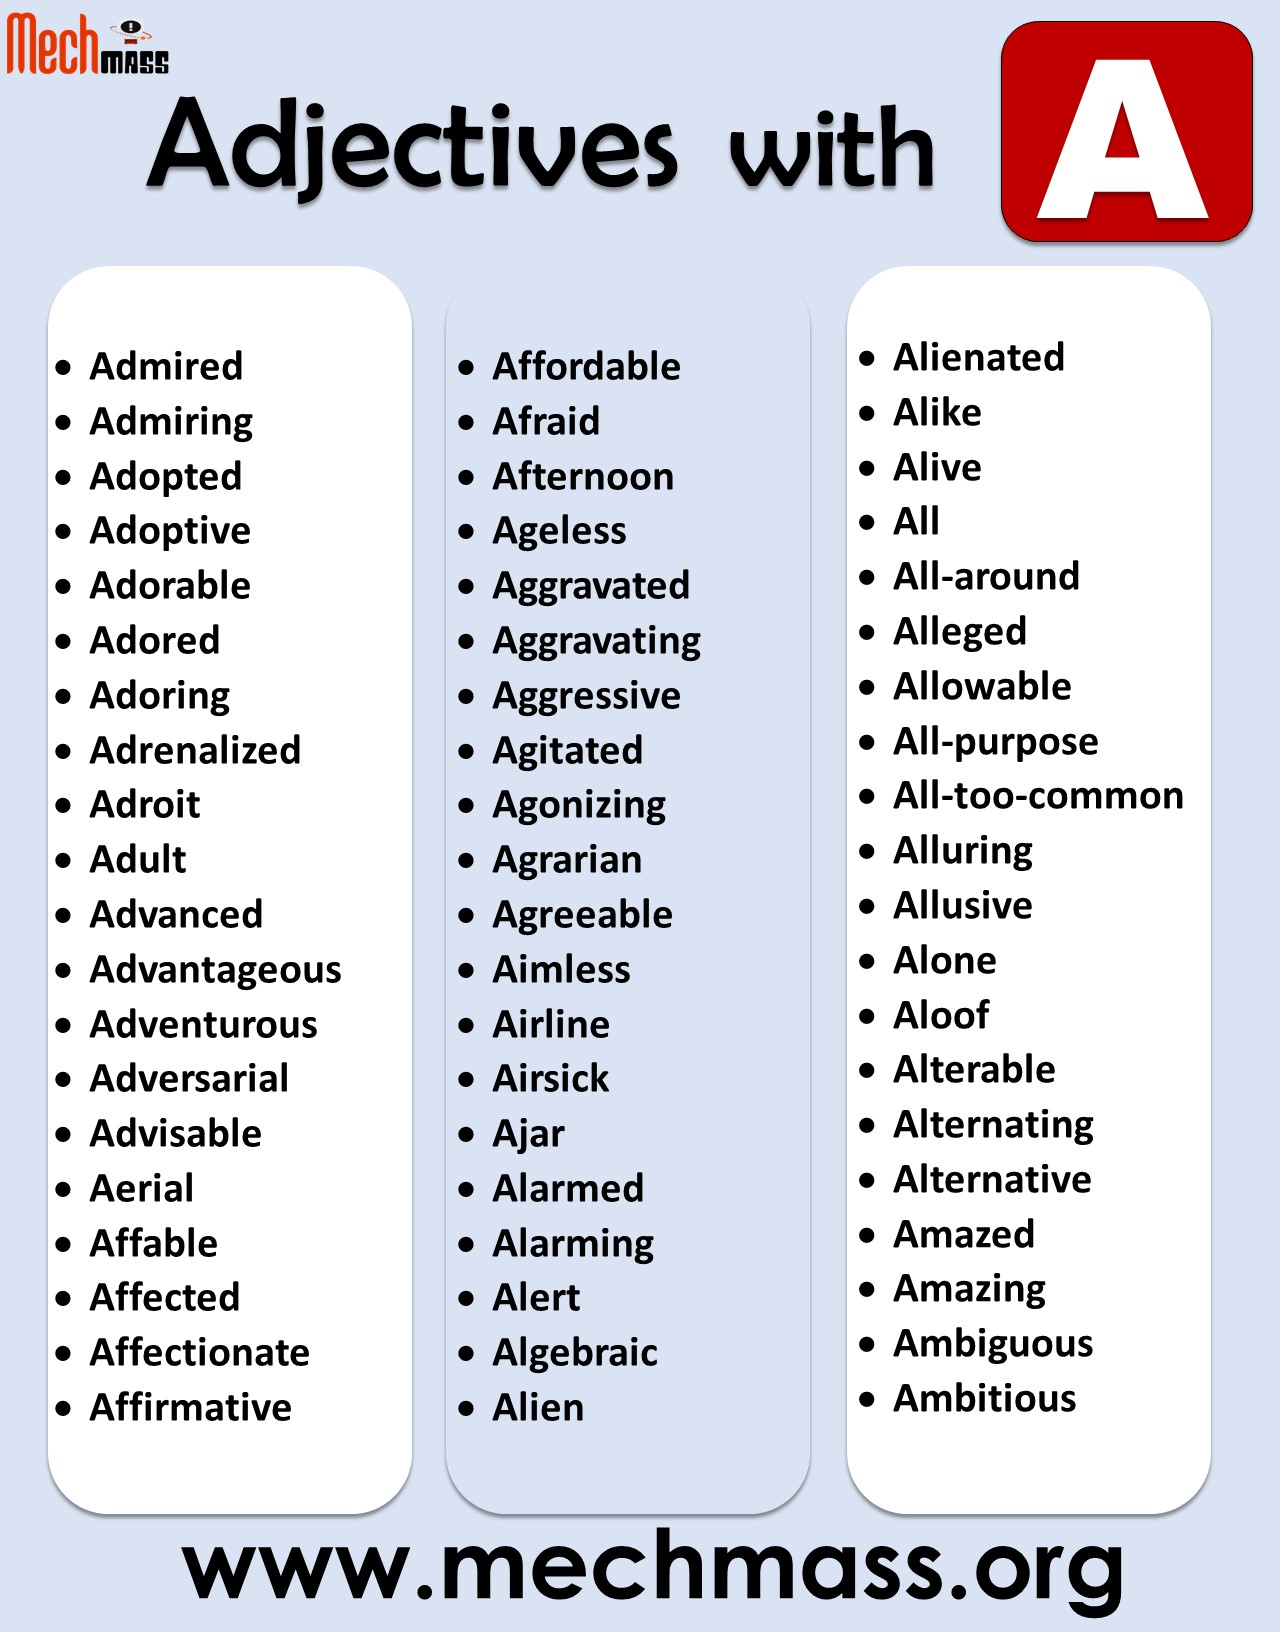 adjectives that start with a to describe a person positively